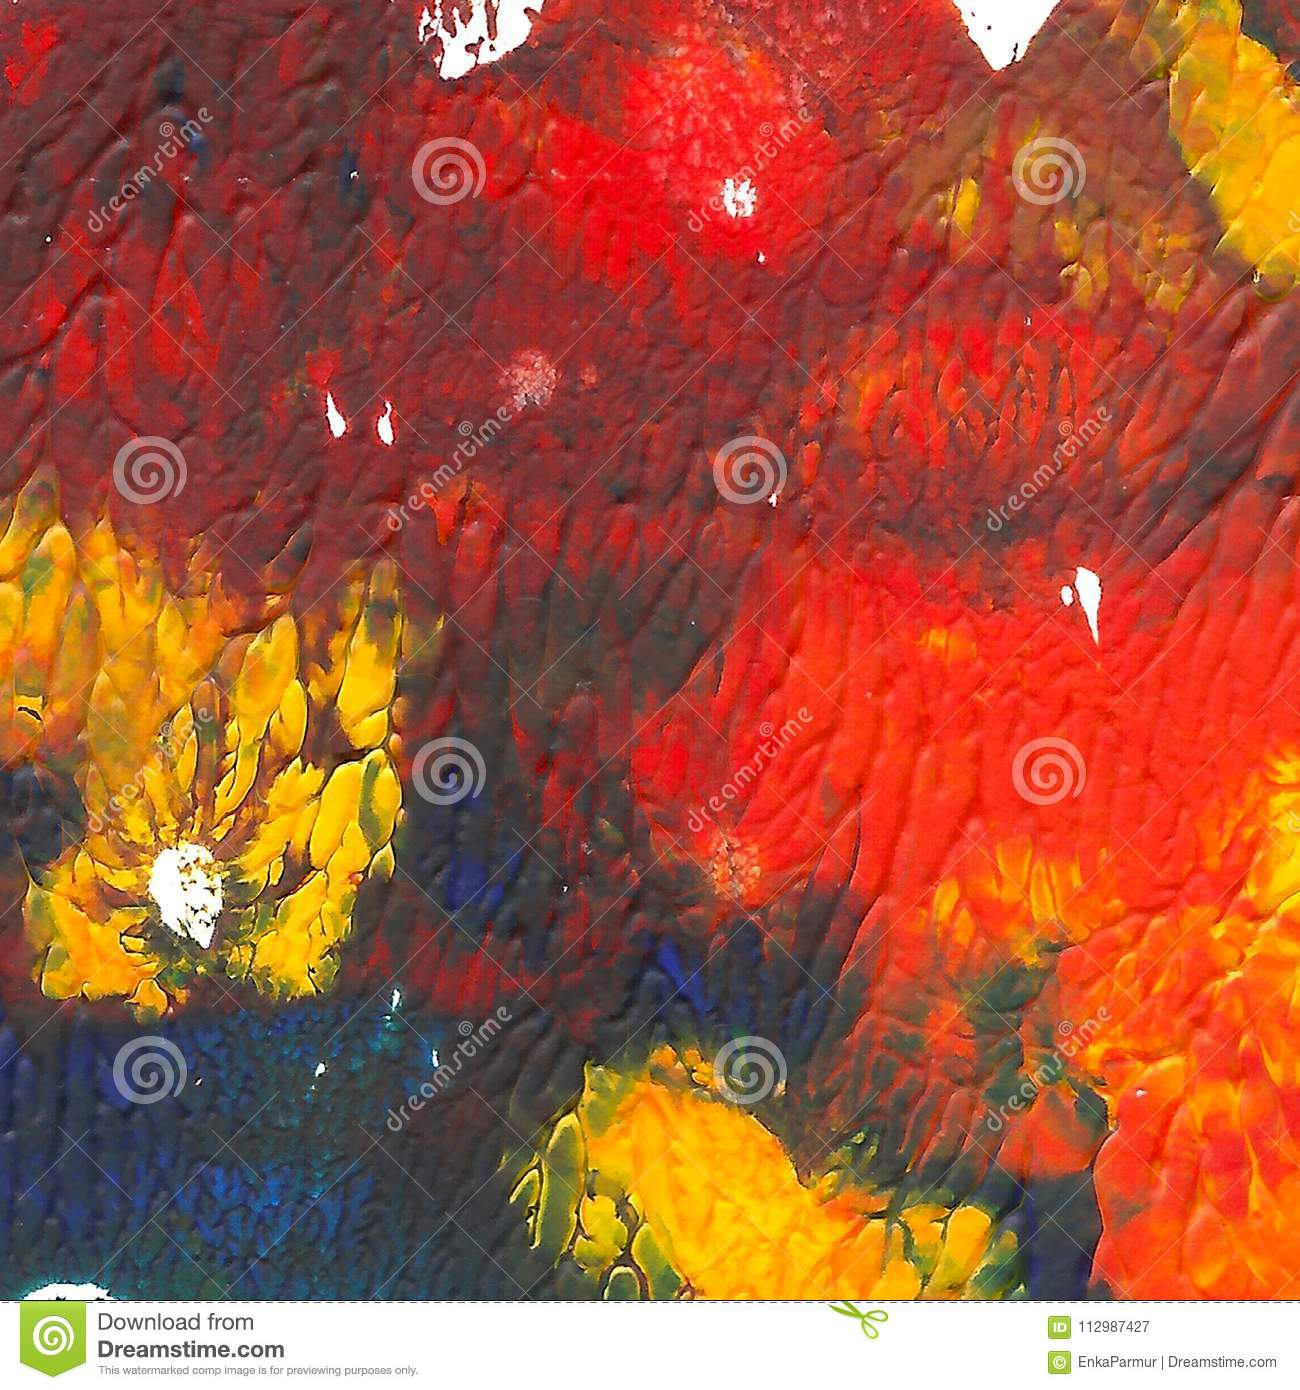 Abstract acrylic painted background. Red, orange, blue, yellow vibrant color.